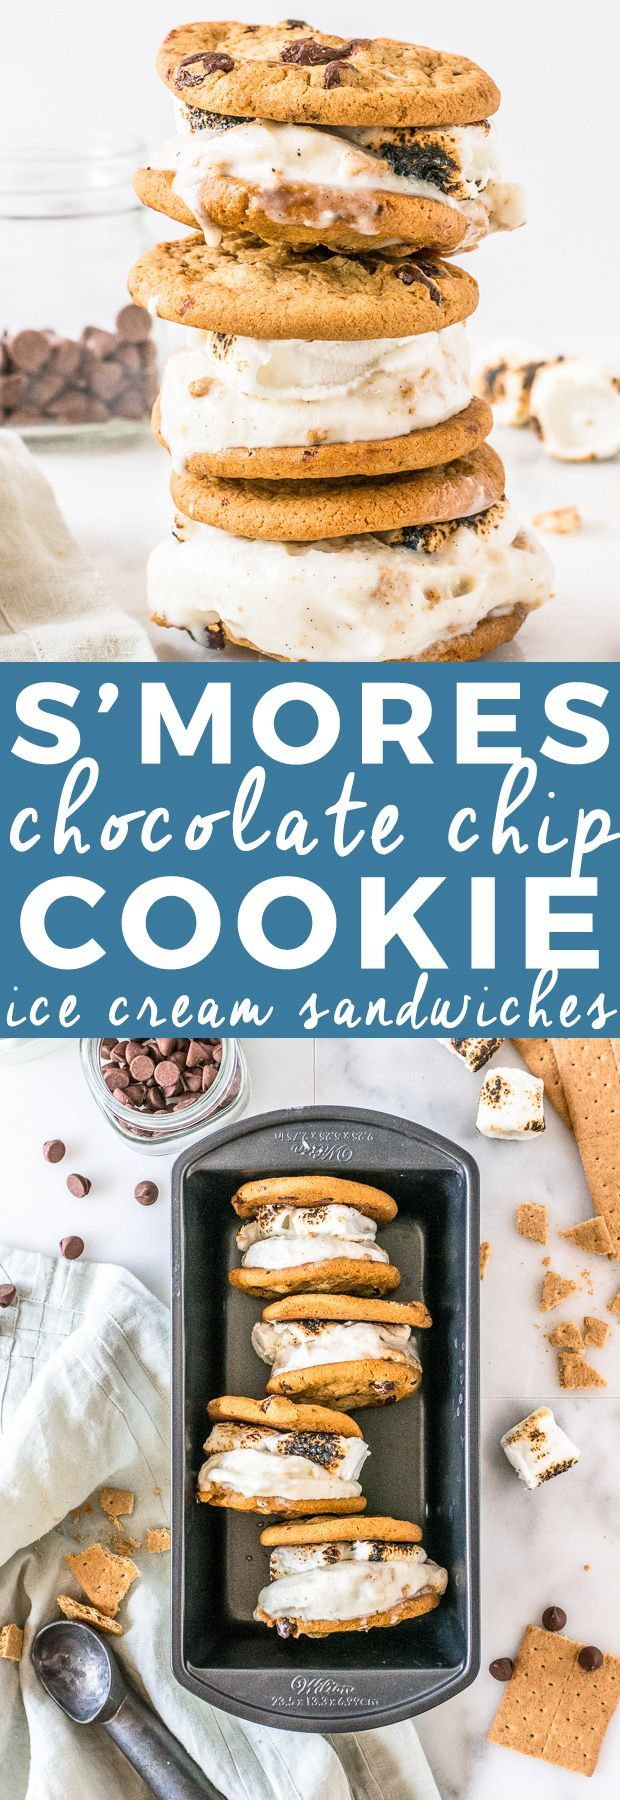 407 best Ice Cream Recipes images on Pinterest | Popsicle recipes ...